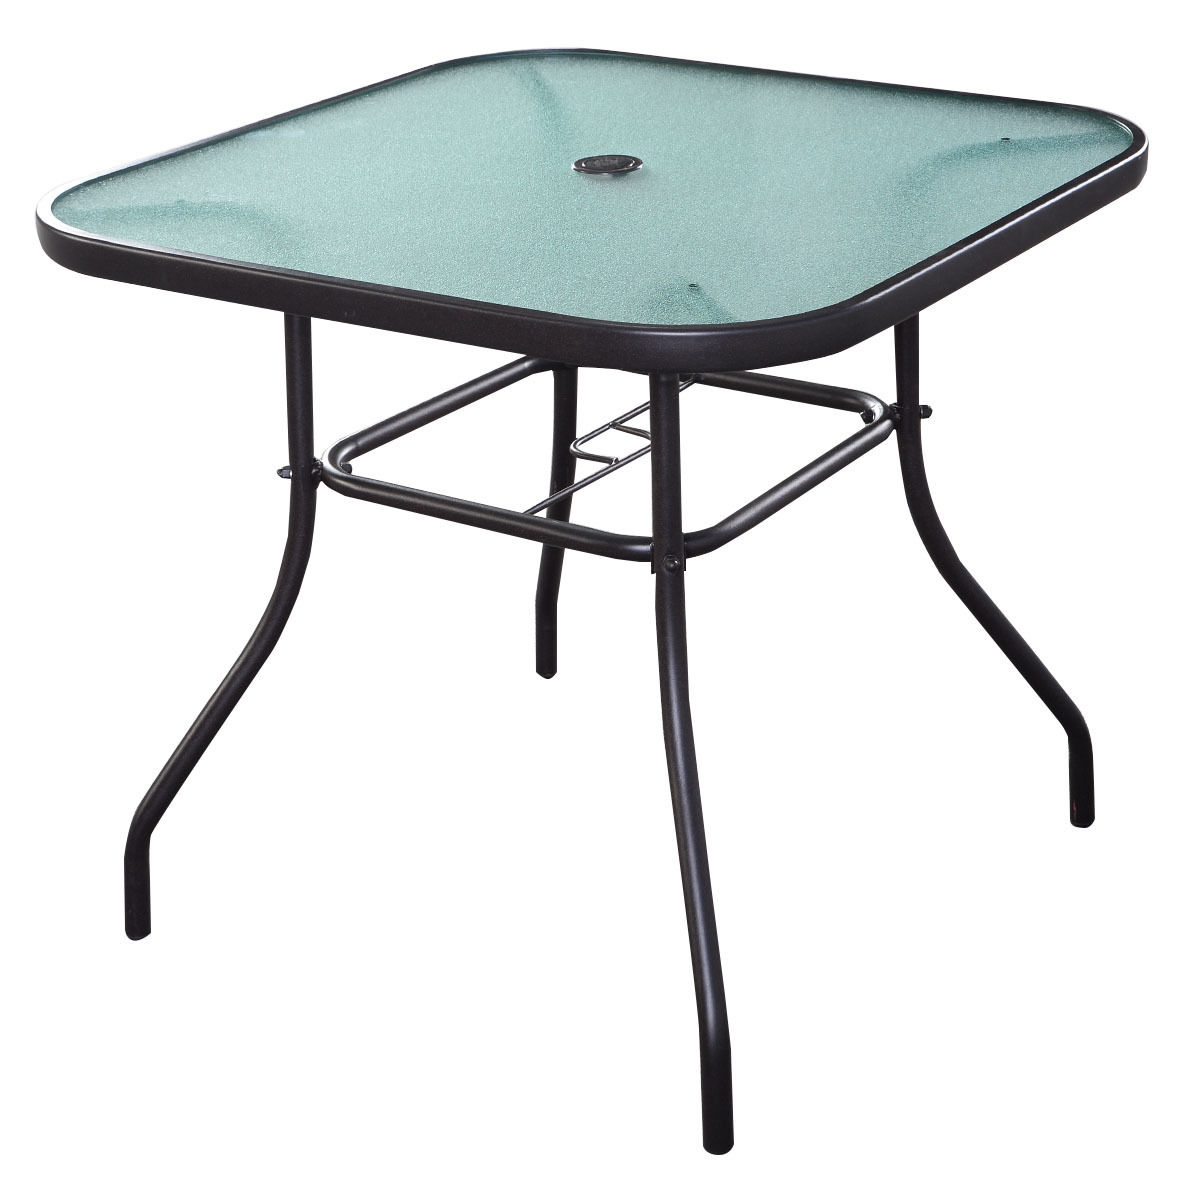 Costway 32 1/2'' Patio Square Bar Dining Table Glass Deck Outdoor Furniture Garden Pool